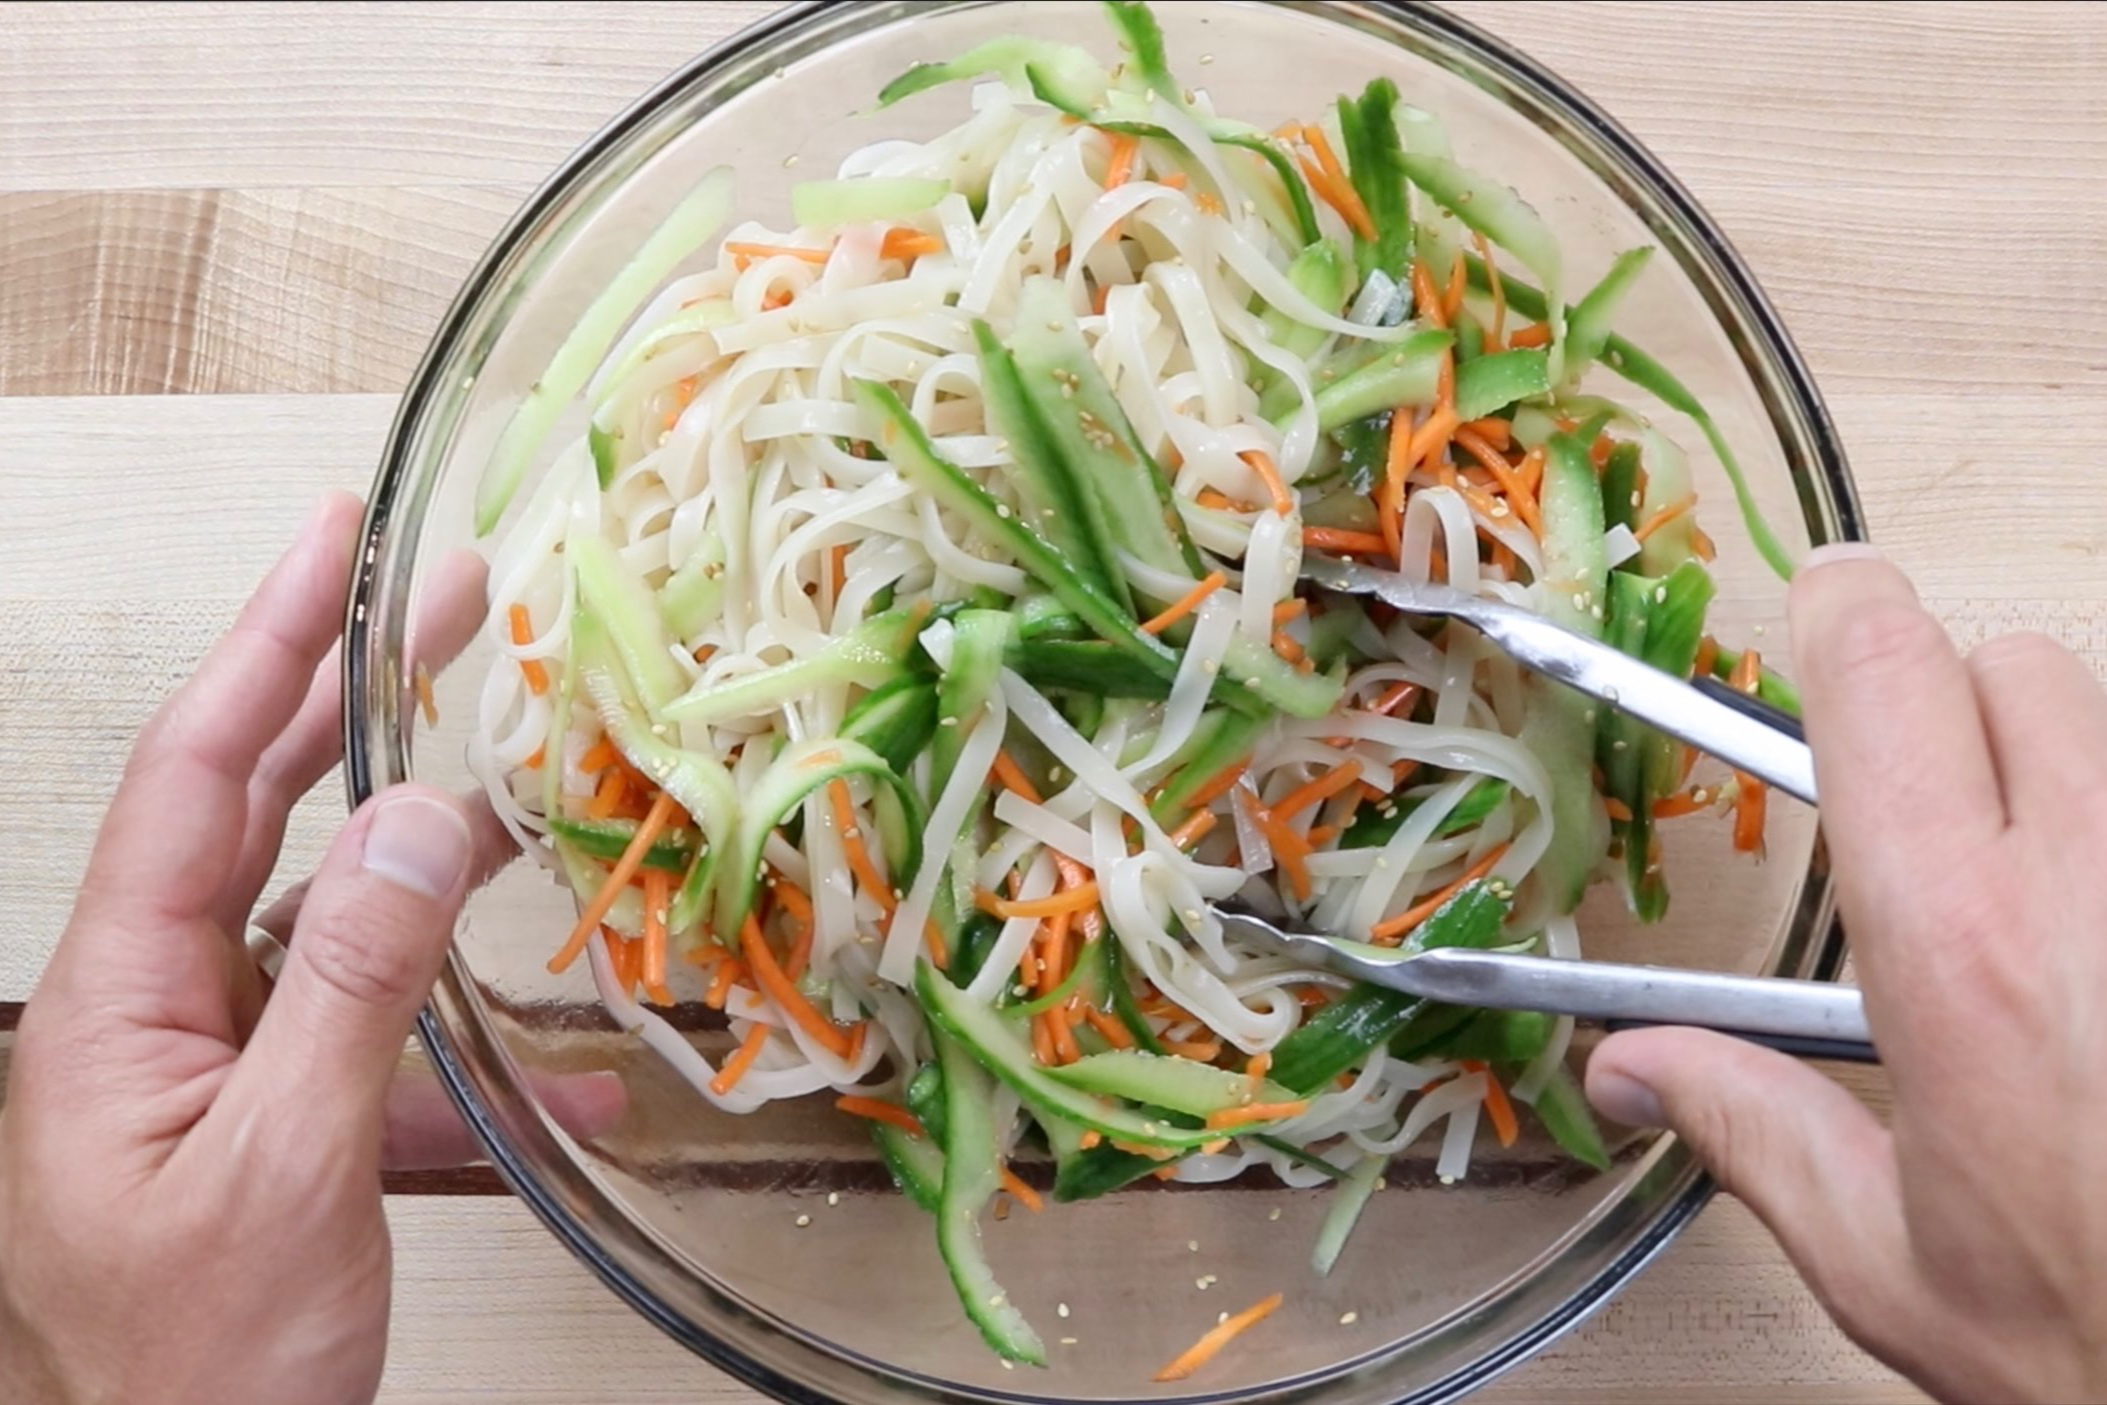 8. In a large serving bowl, toss the noodles, carrots, and cucumbers with the dressing. -